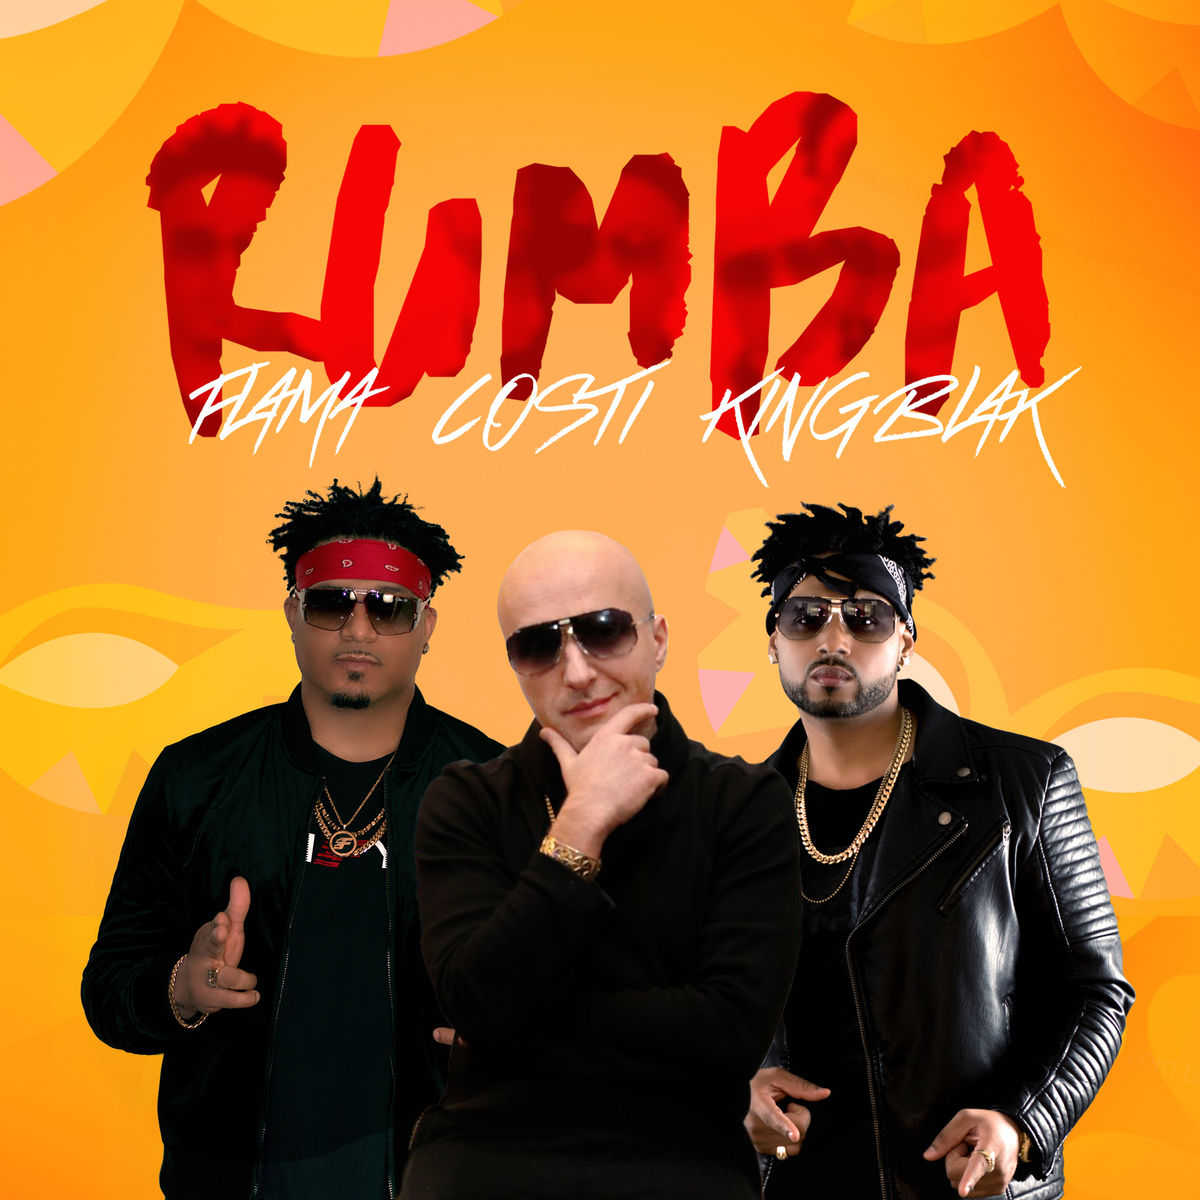 COSTI x FLAMA x KING BLAK – RUMBA